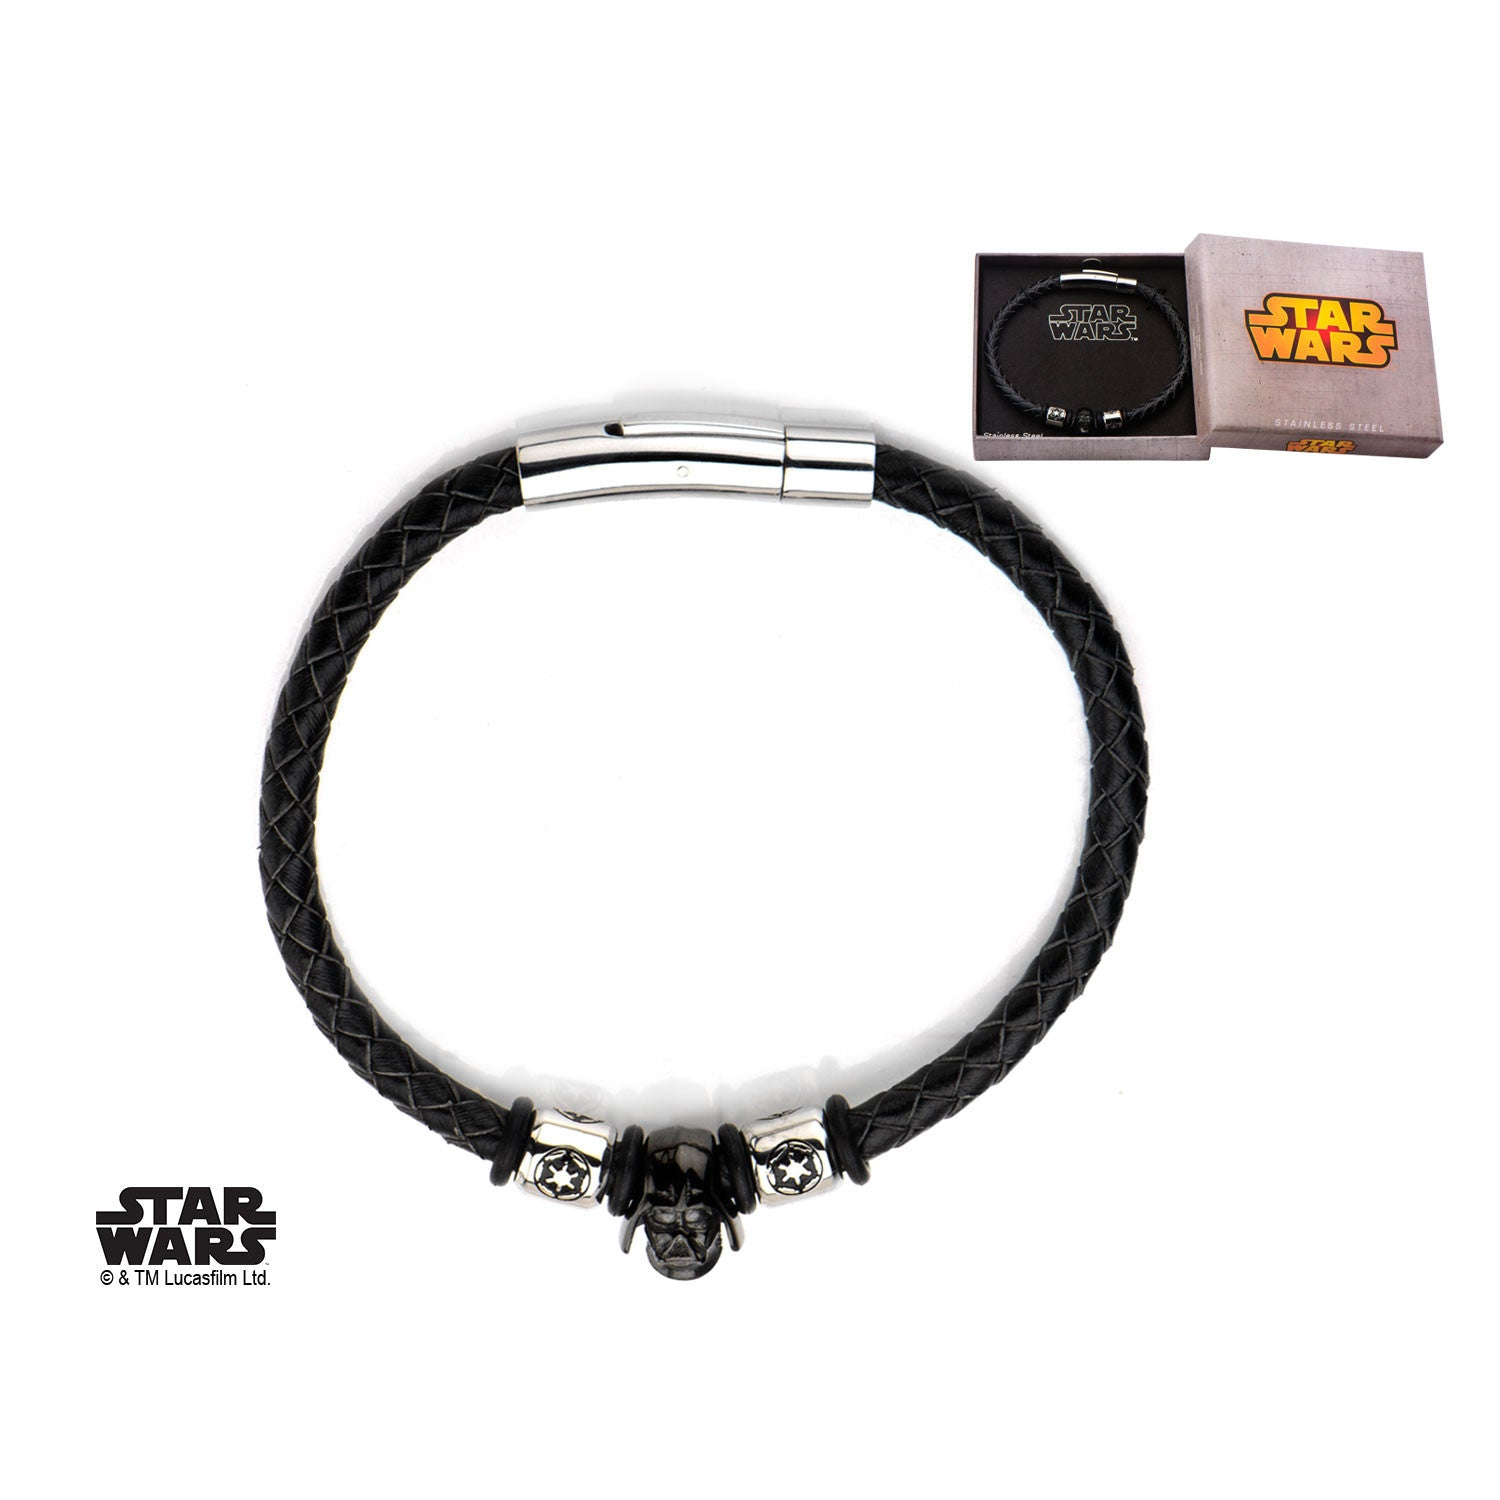 Star wars darth vader and galactic empire symbol braided leather star wars darth vader and galactic empire symbol braided leather bracelet steel 1000jewels biocorpaavc Images